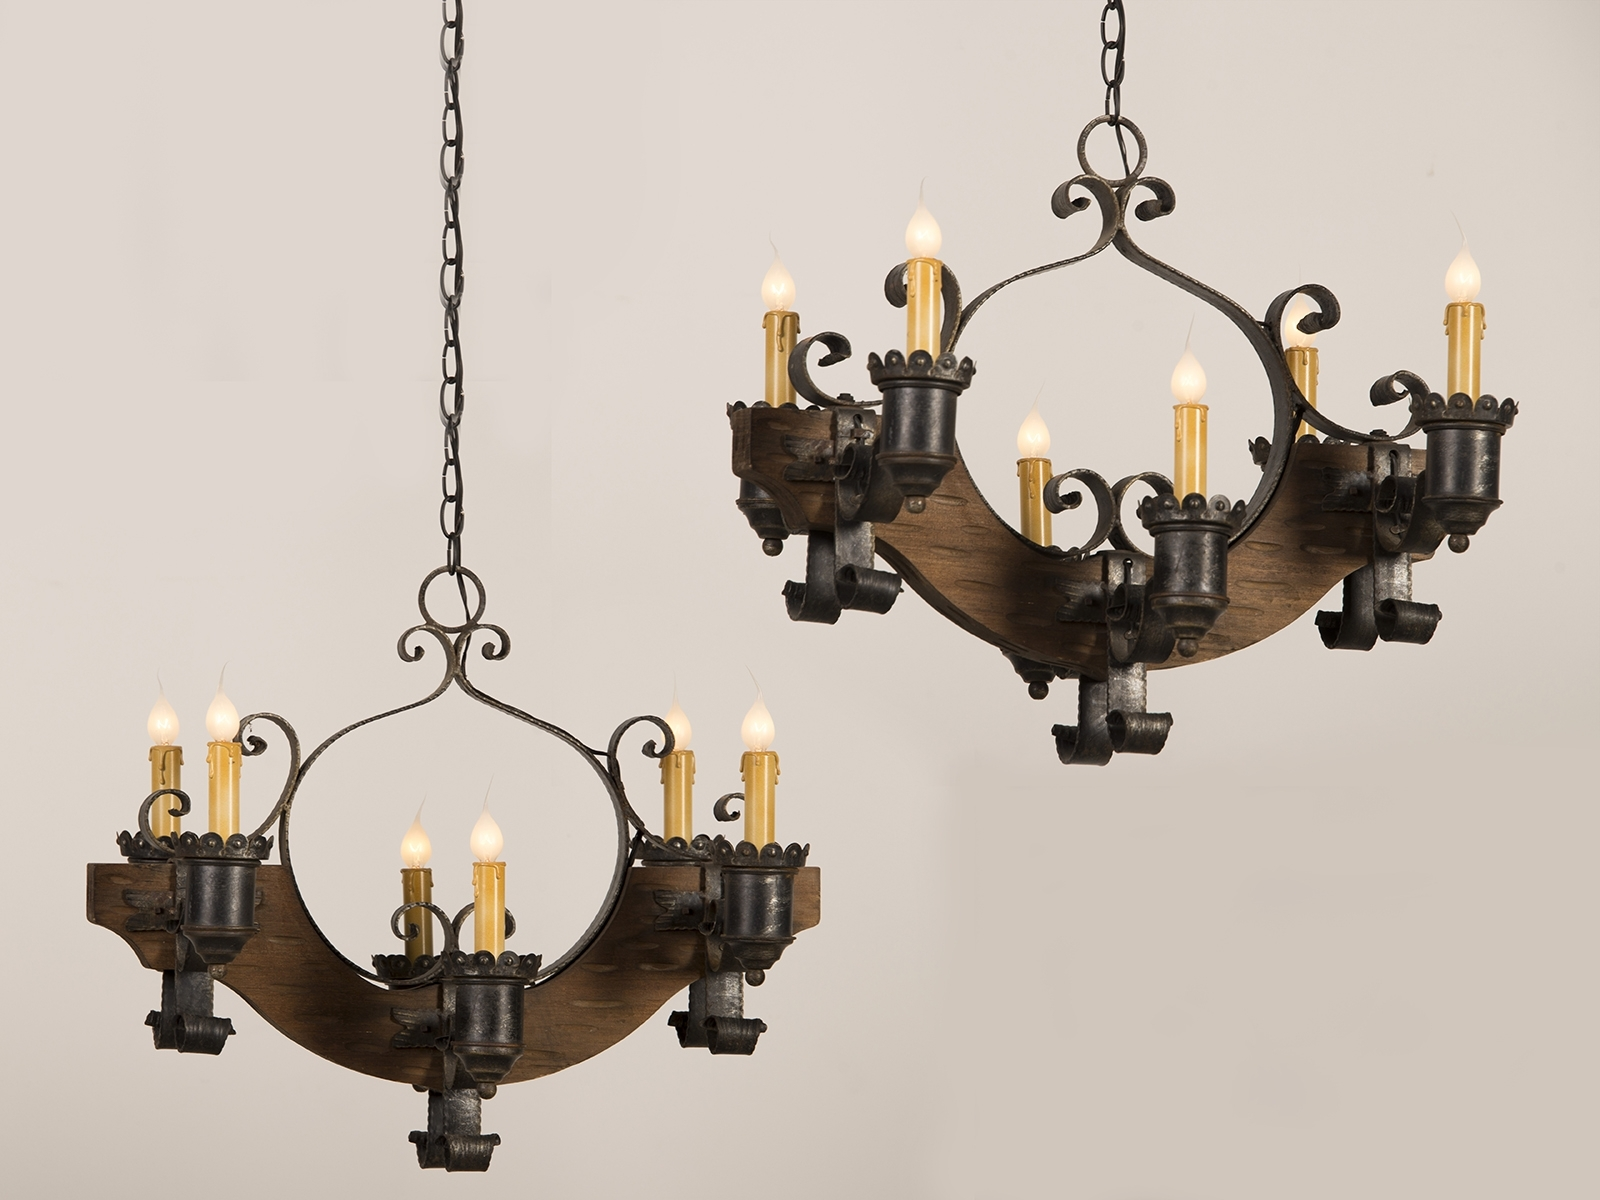 Cast Iron Antique Chandelier Throughout 2018 Antique And Vintage Pair Old Wood Chandeliers With Black Cast Iron (View 4 of 15)